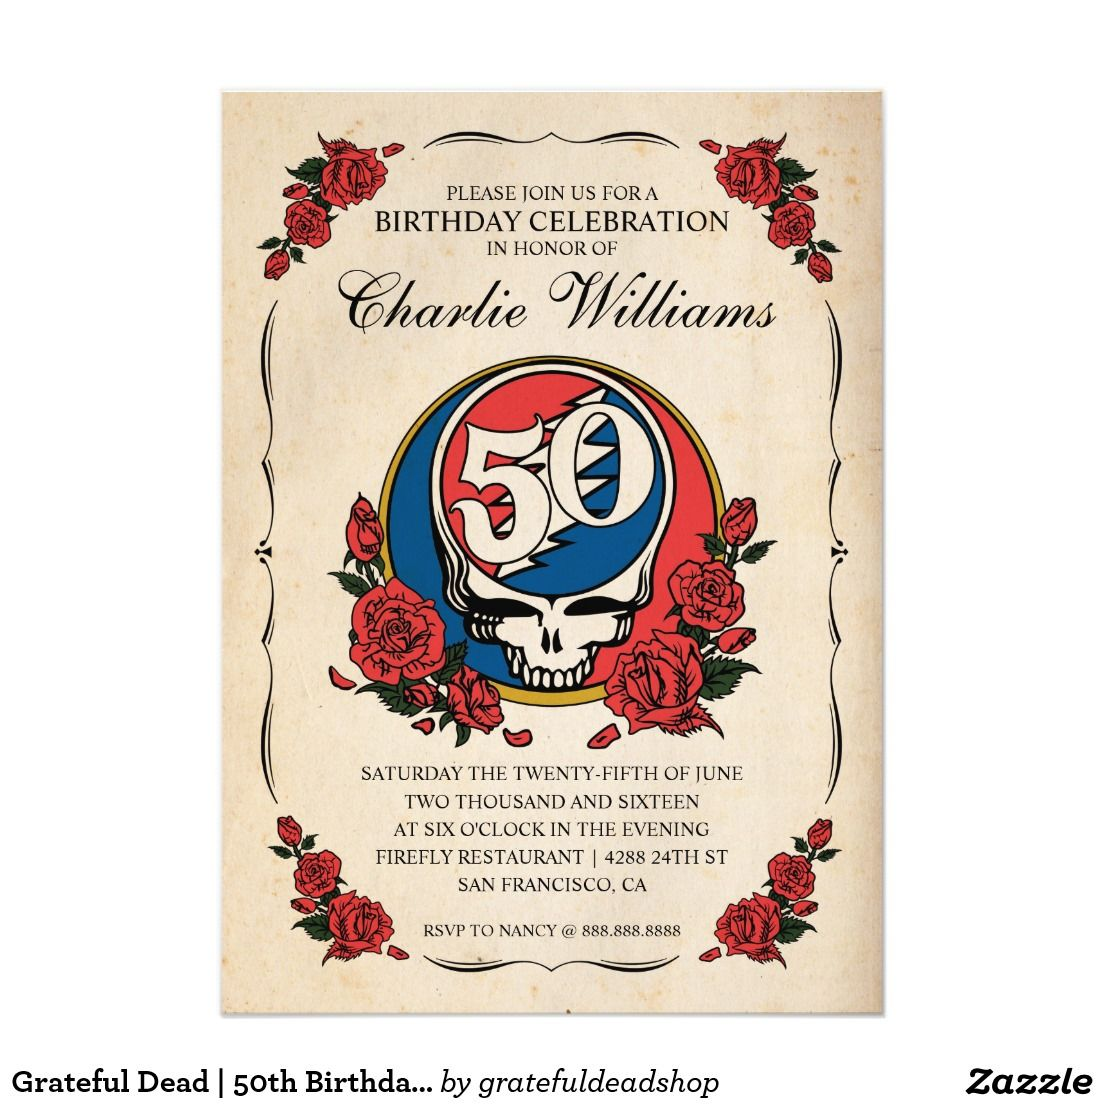 Grateful dead 50th birthday party card invitations grateful dead 50th birthday party card m4hsunfo Choice Image